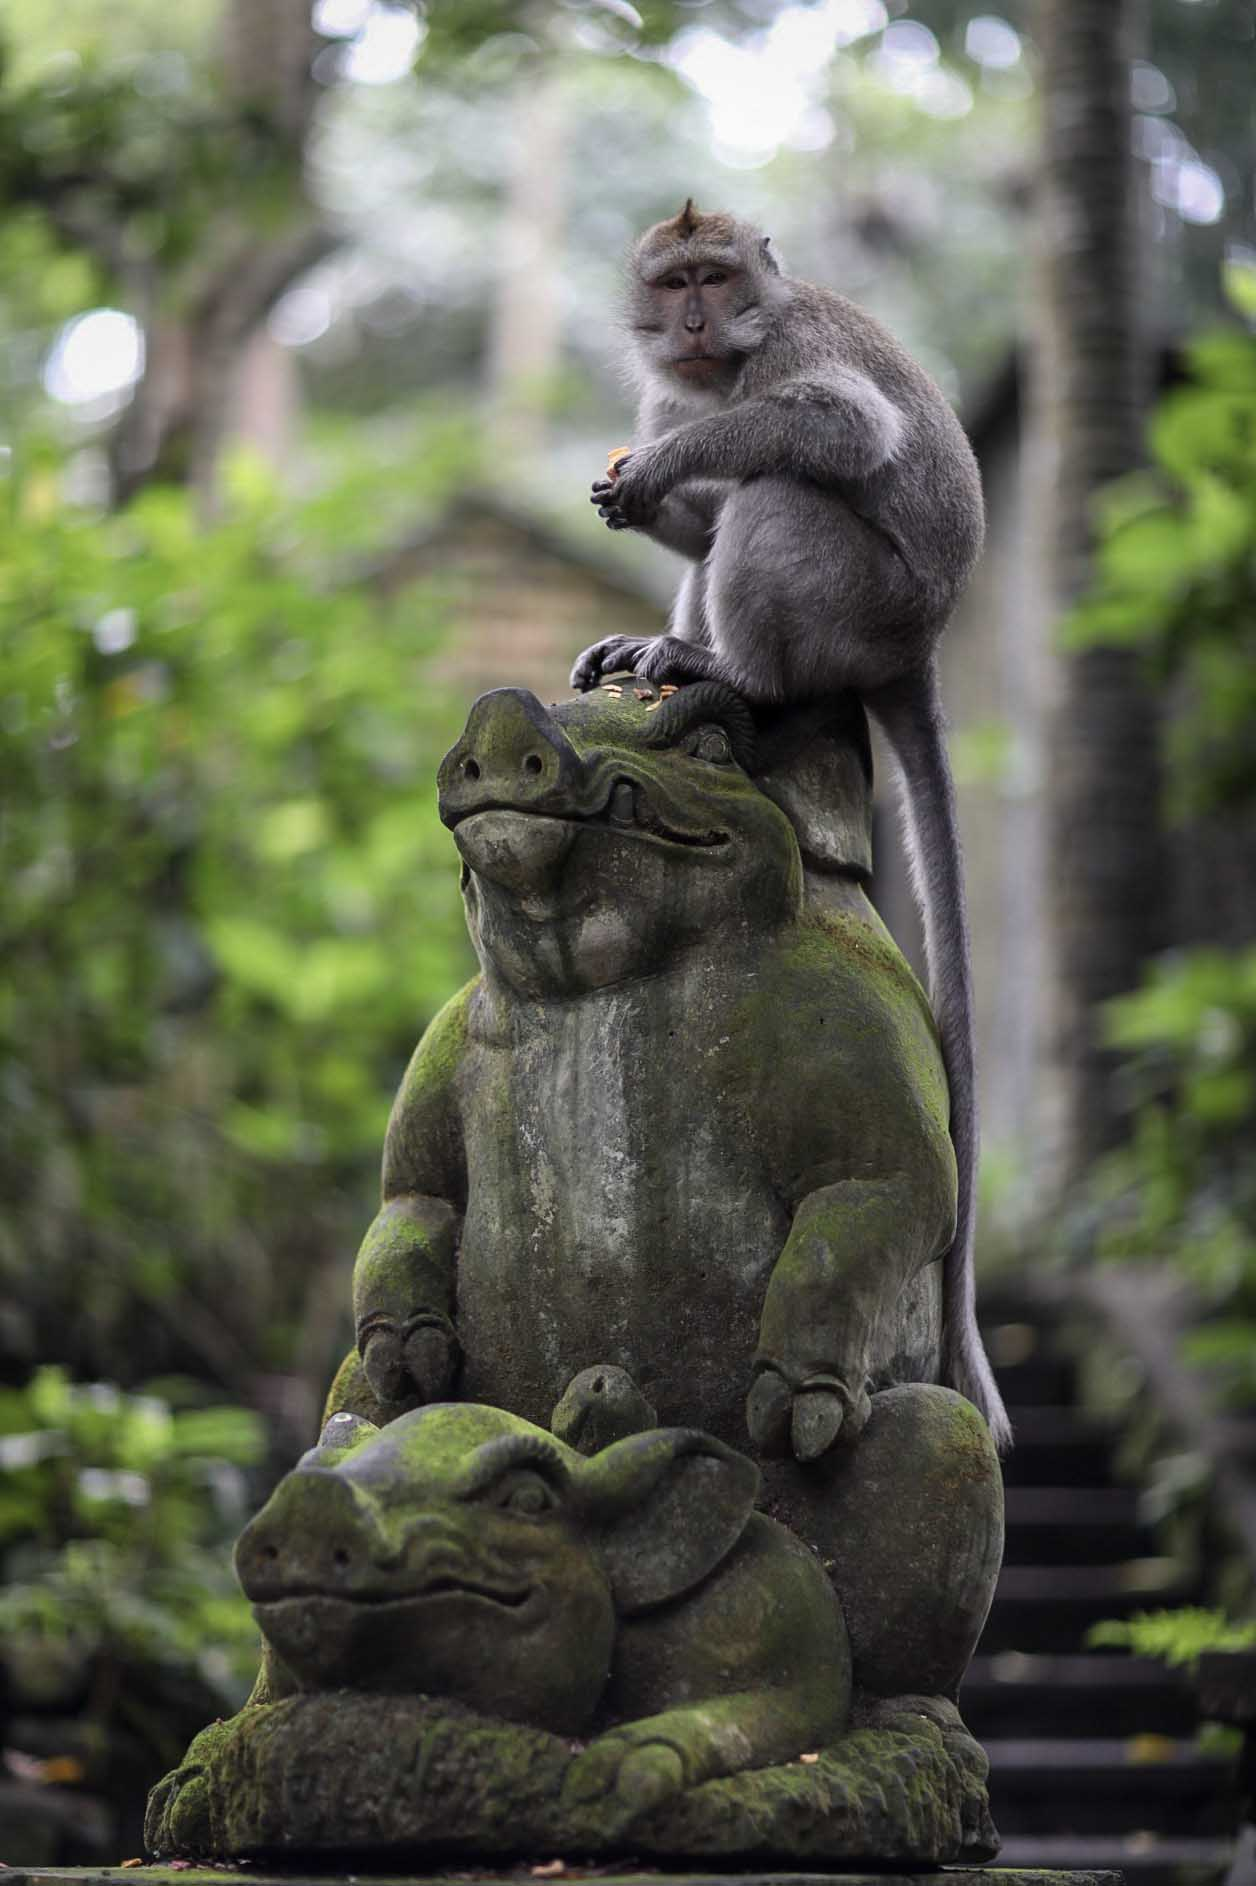 Monkey on a statue in Ubud Monkey Forest. Bali, Indonesia | Travel Photography